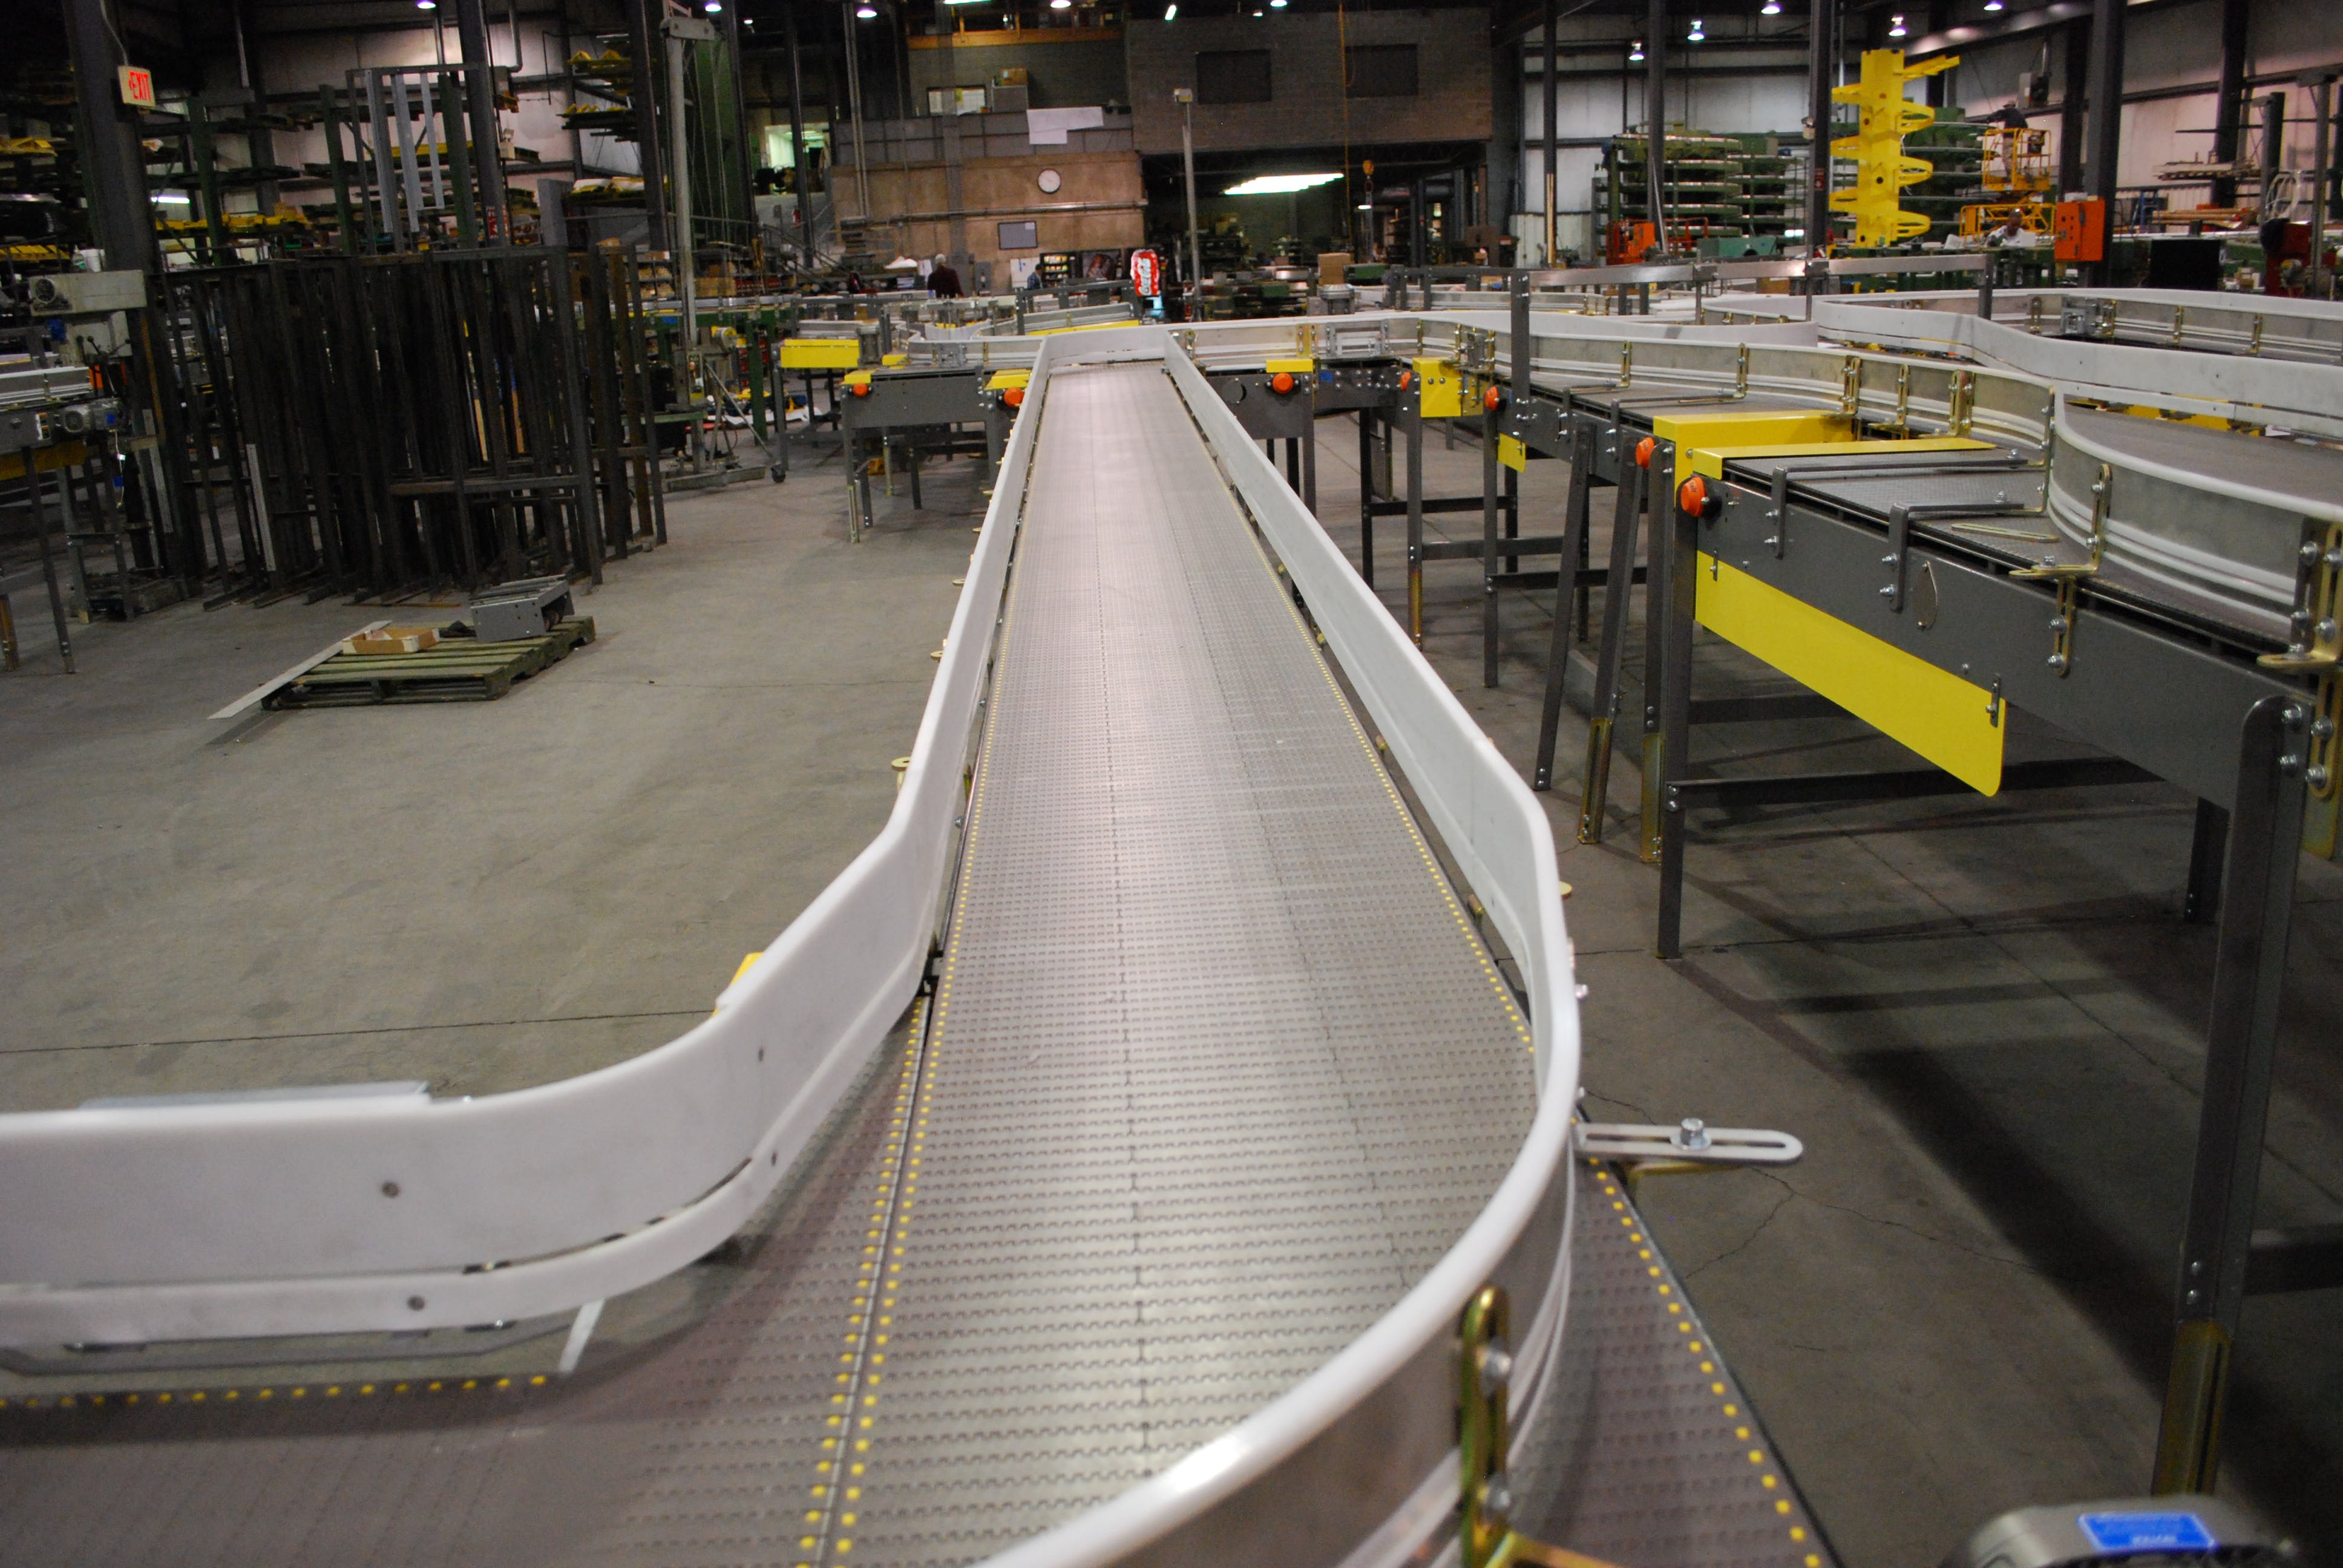 Conveyors Conveyor sold by Alliance Industrial Corporation